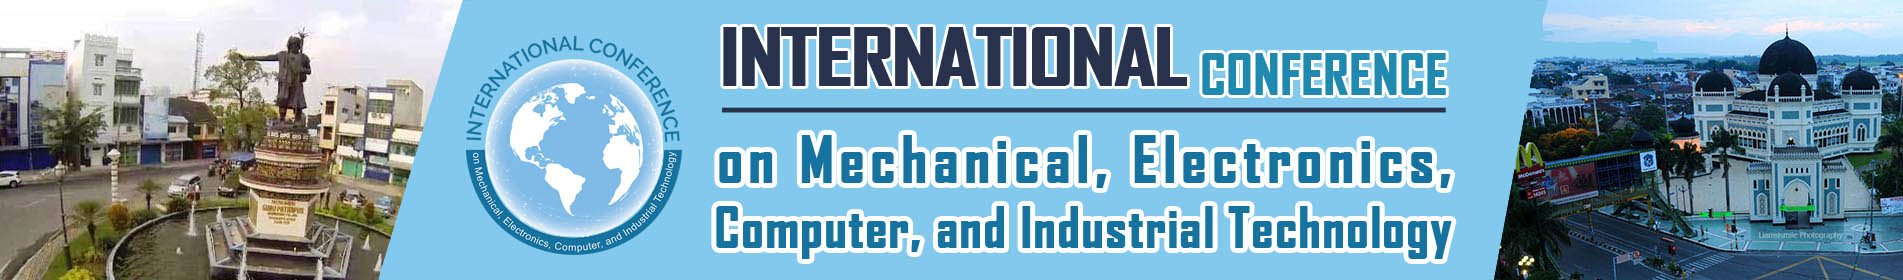 Home | International Conference on Mechanical, Electronics, Computer, and Industrial Technology